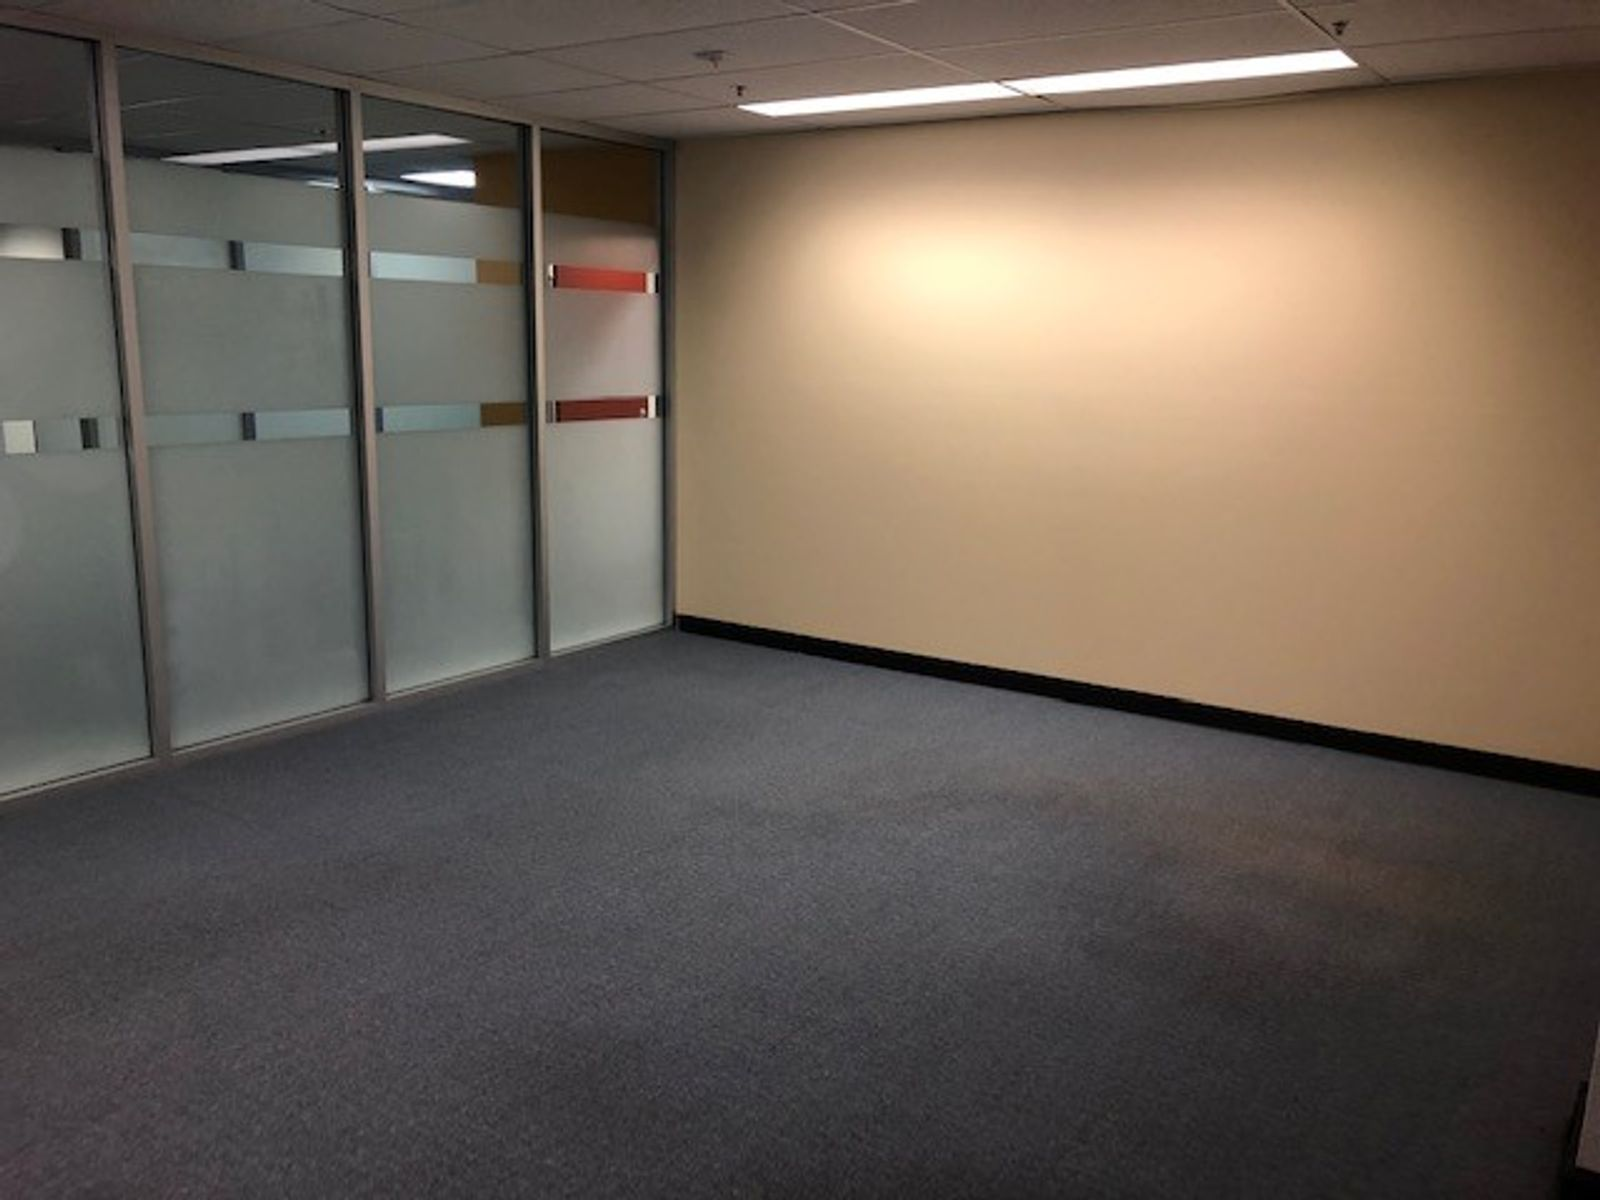 Level 3/25 Cavenagh Street, Darwin City, NT 0800